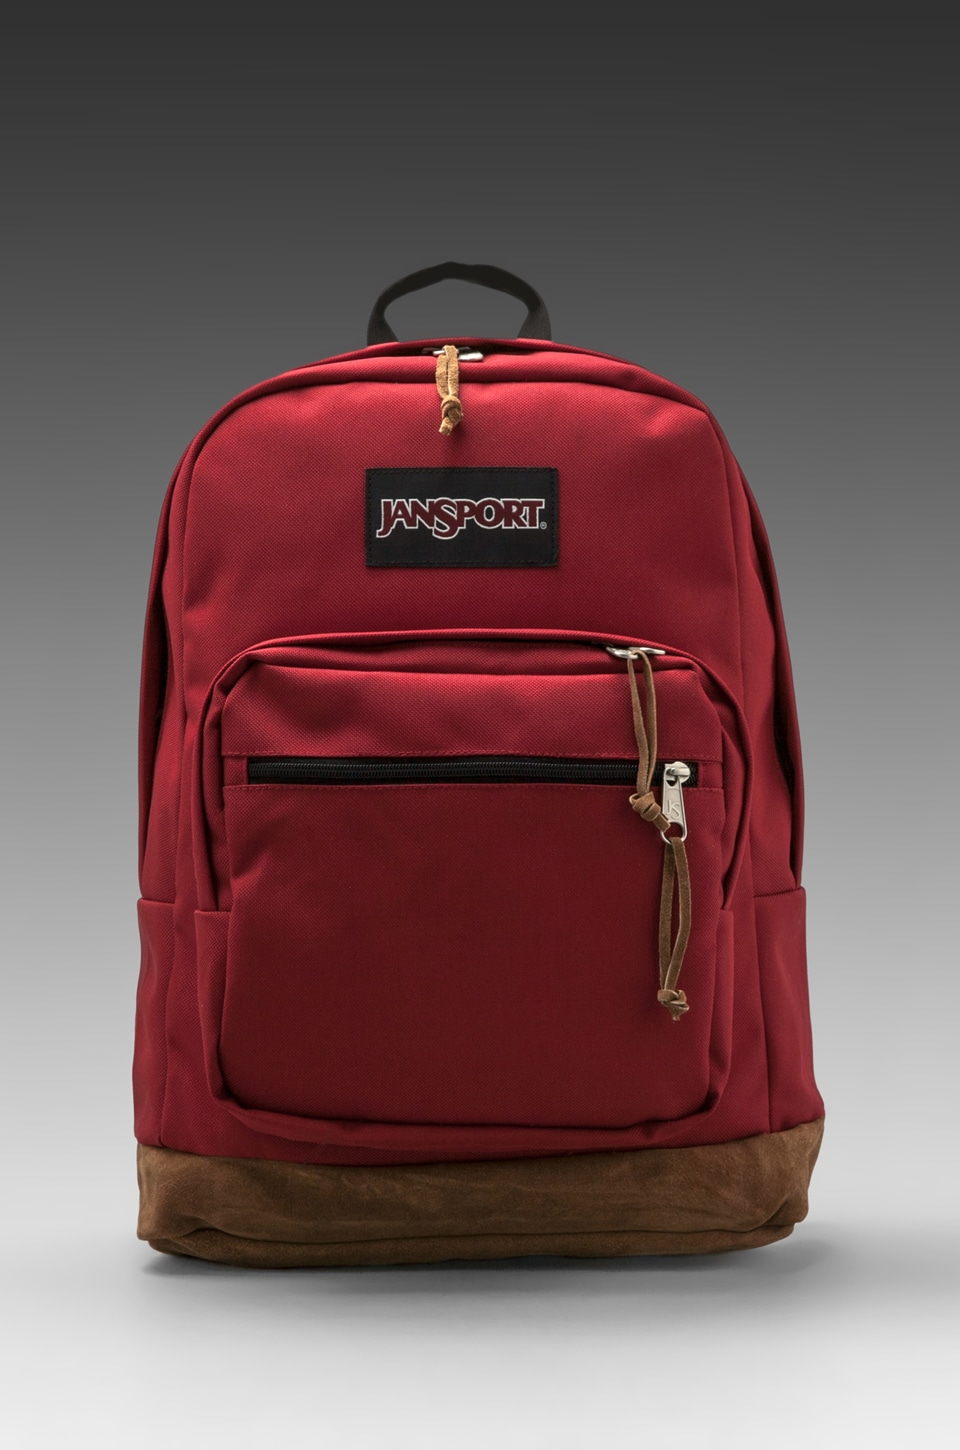 Jansport Right Pack Backpack in Viking Red